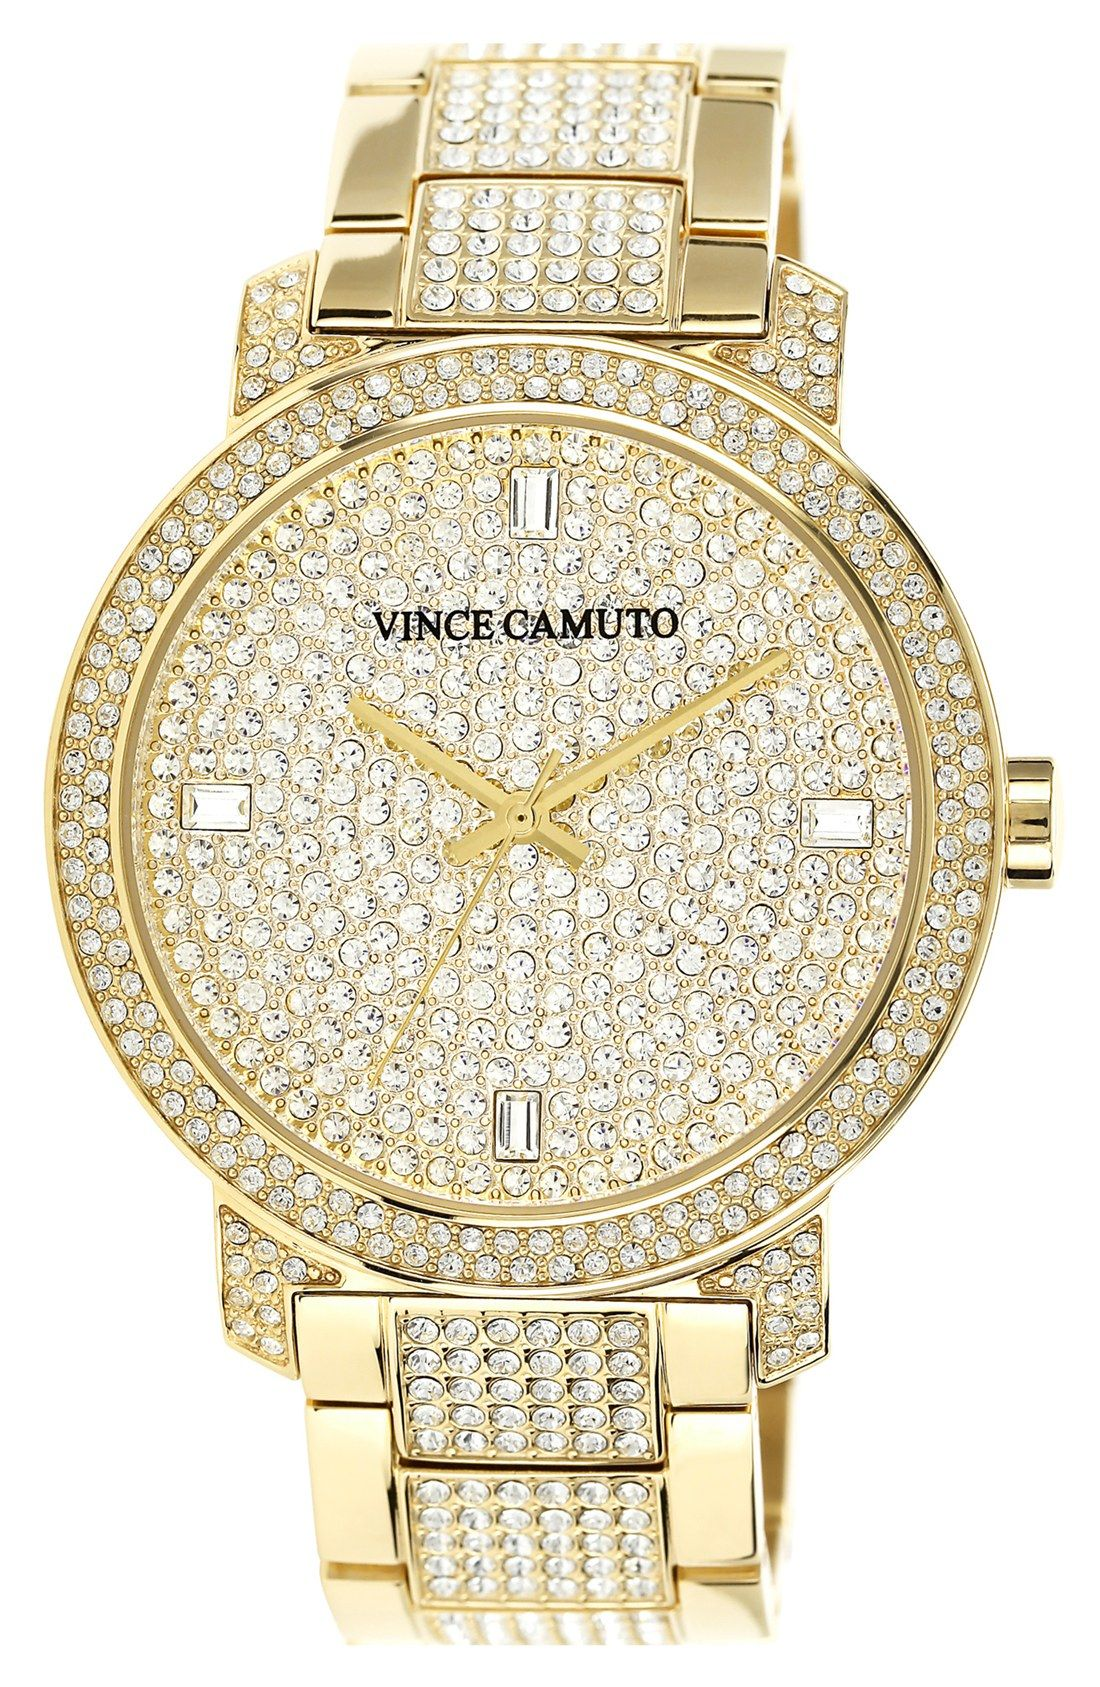 So much glitz on this Vince Camuto watch.